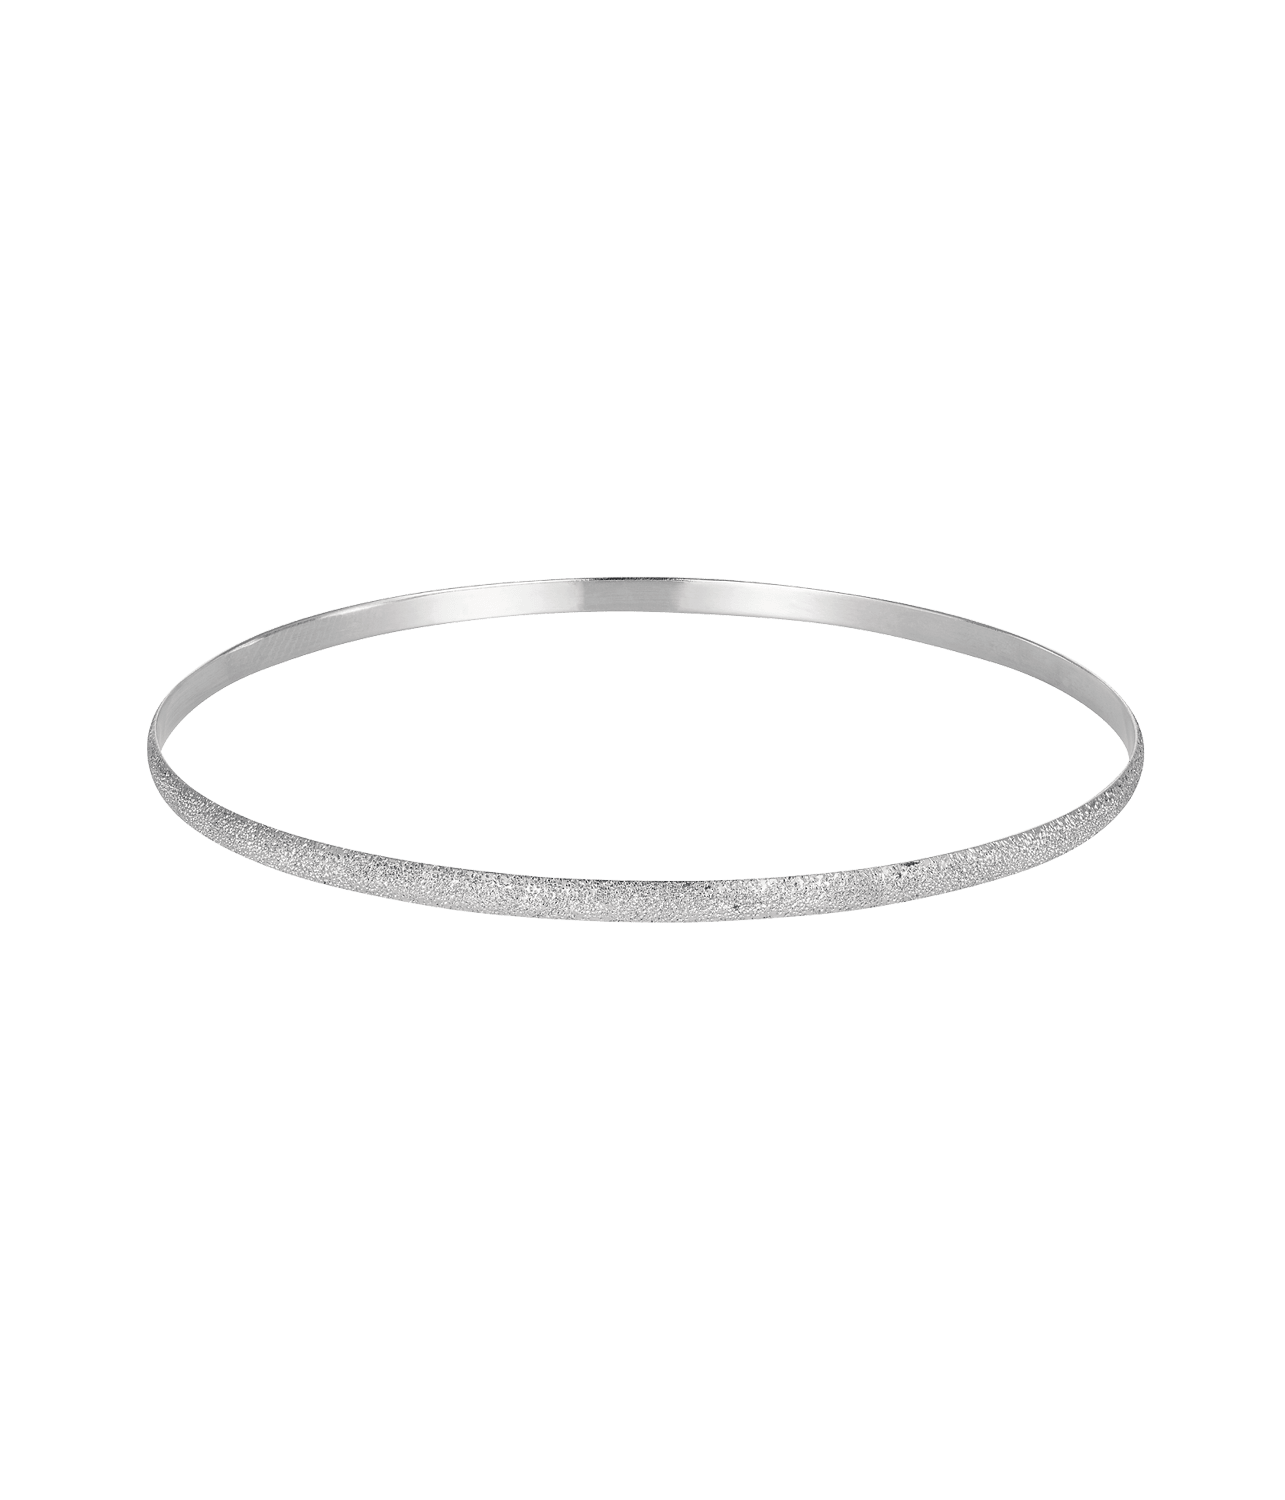 Carolina Bucci Florentine Finish Flat Bangle White Gold